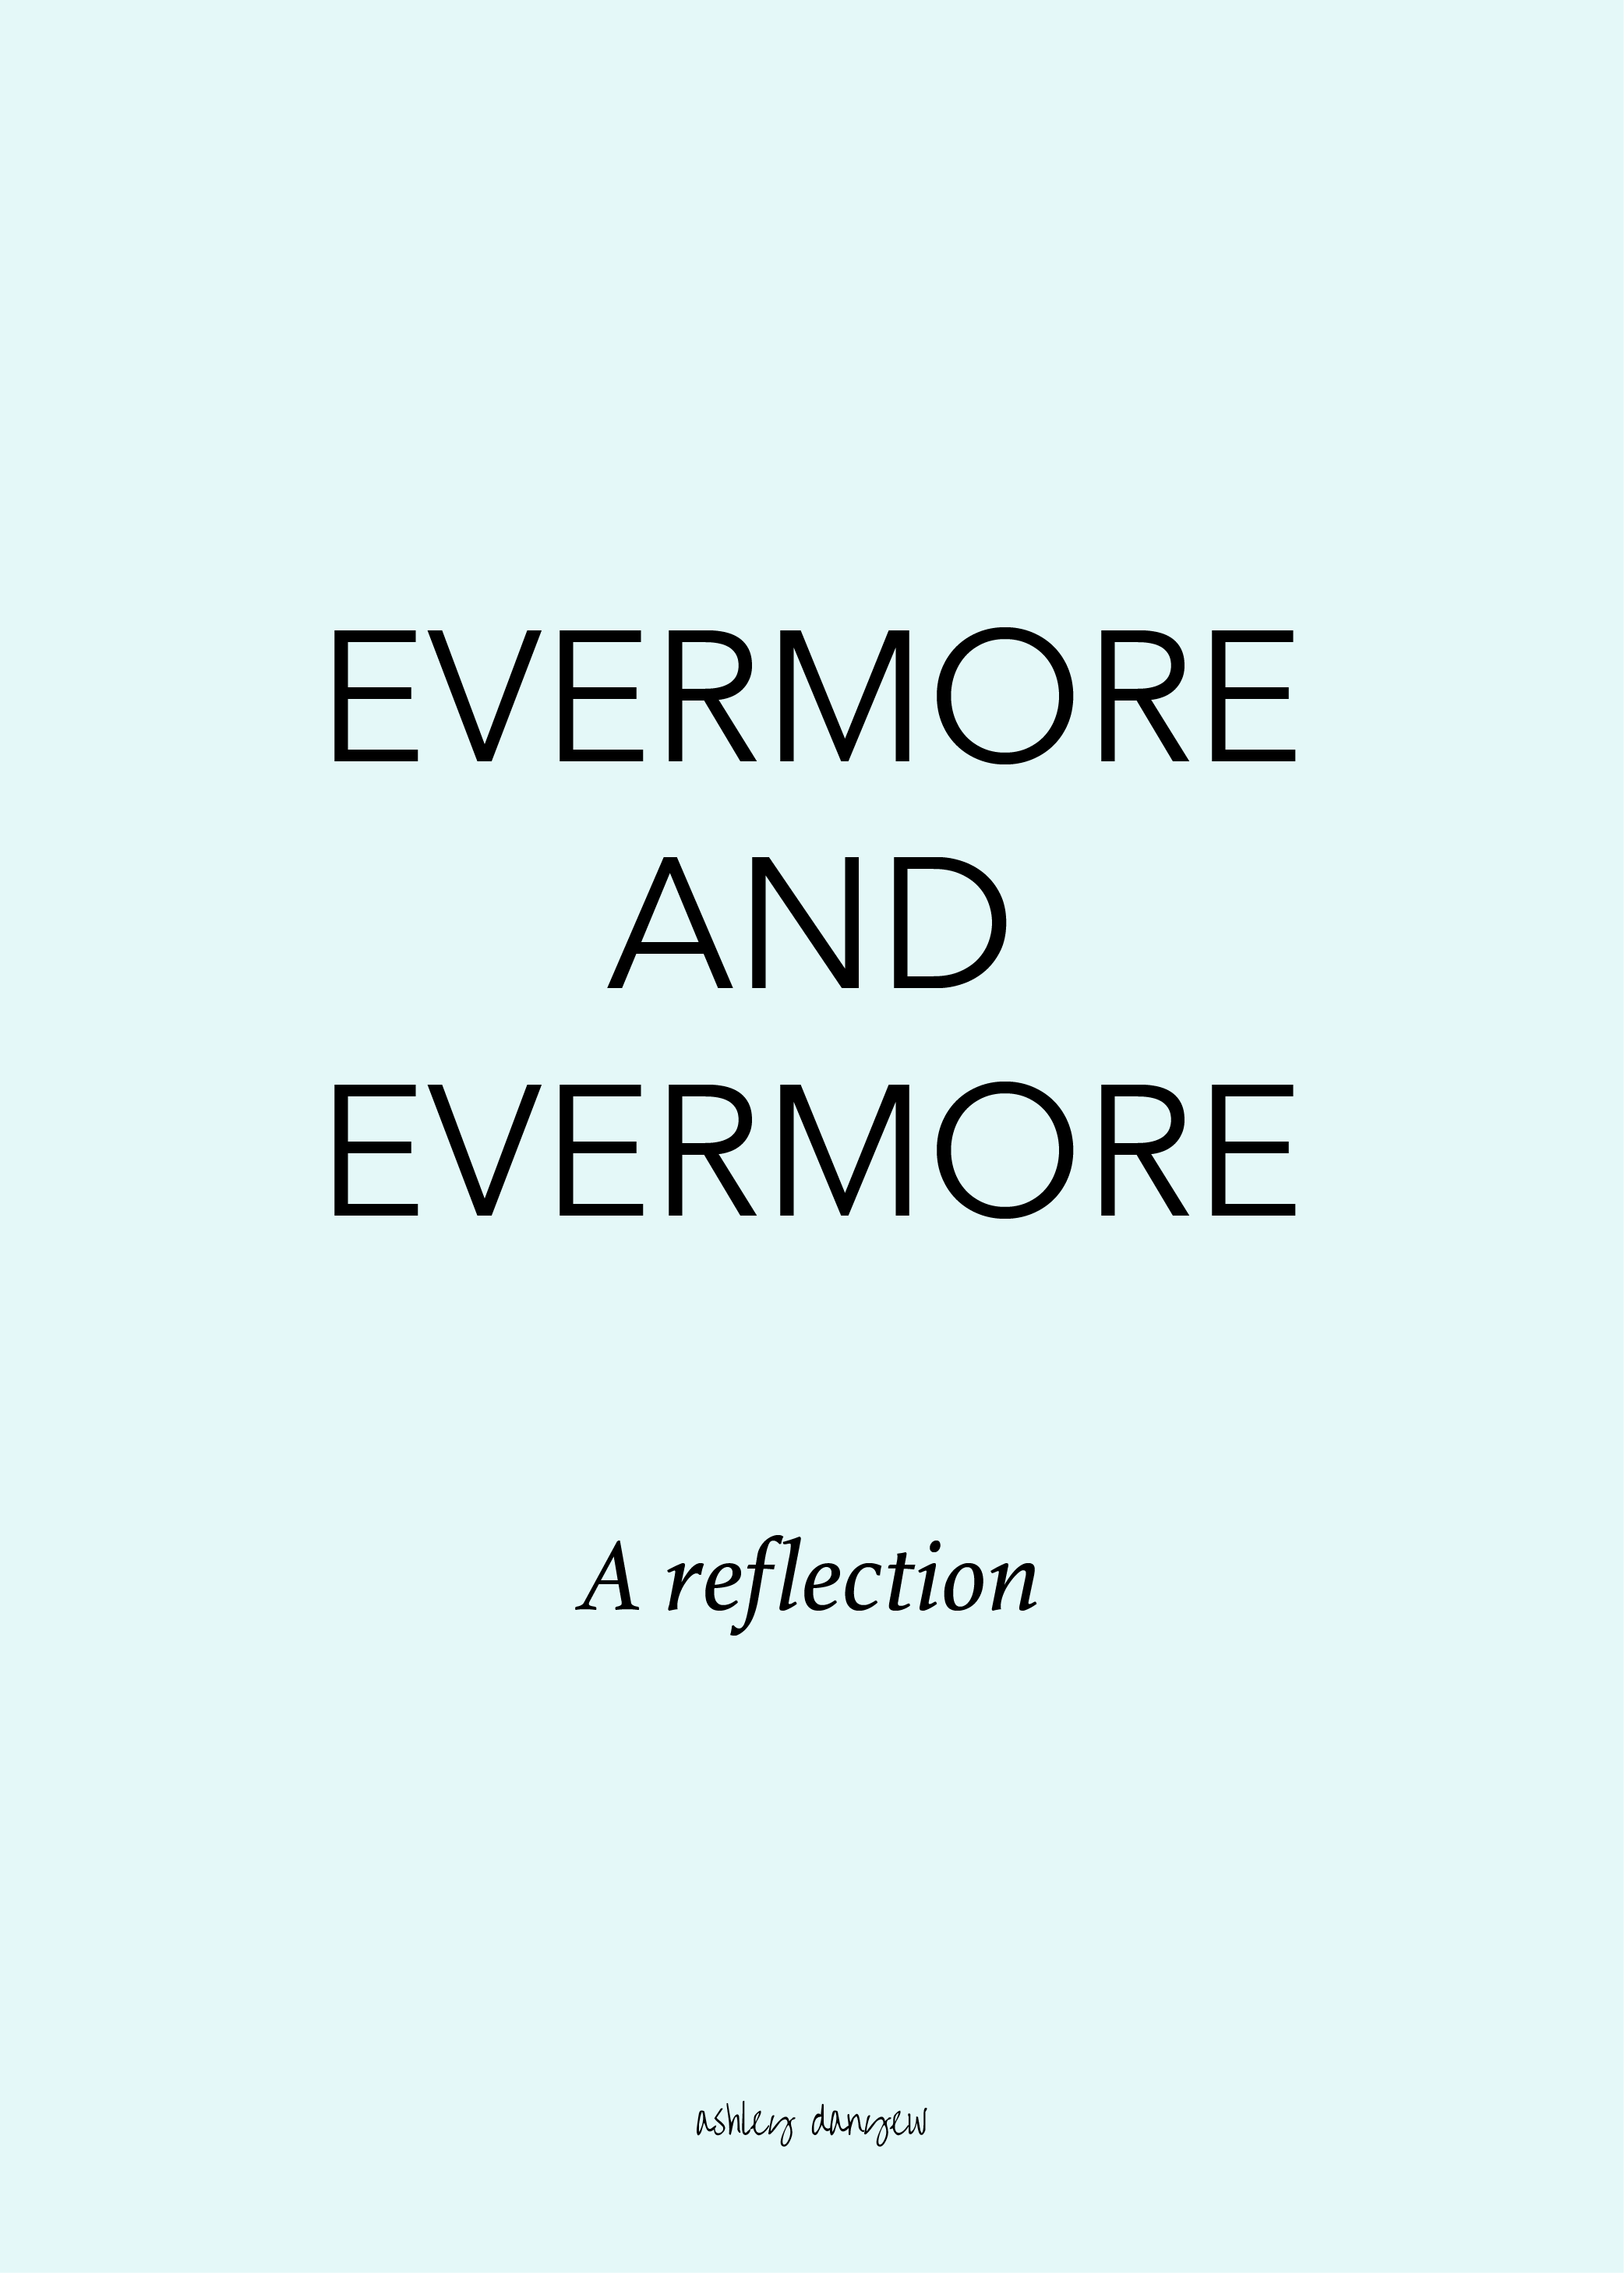 Copy of Evermore and Evermore: A Reflection